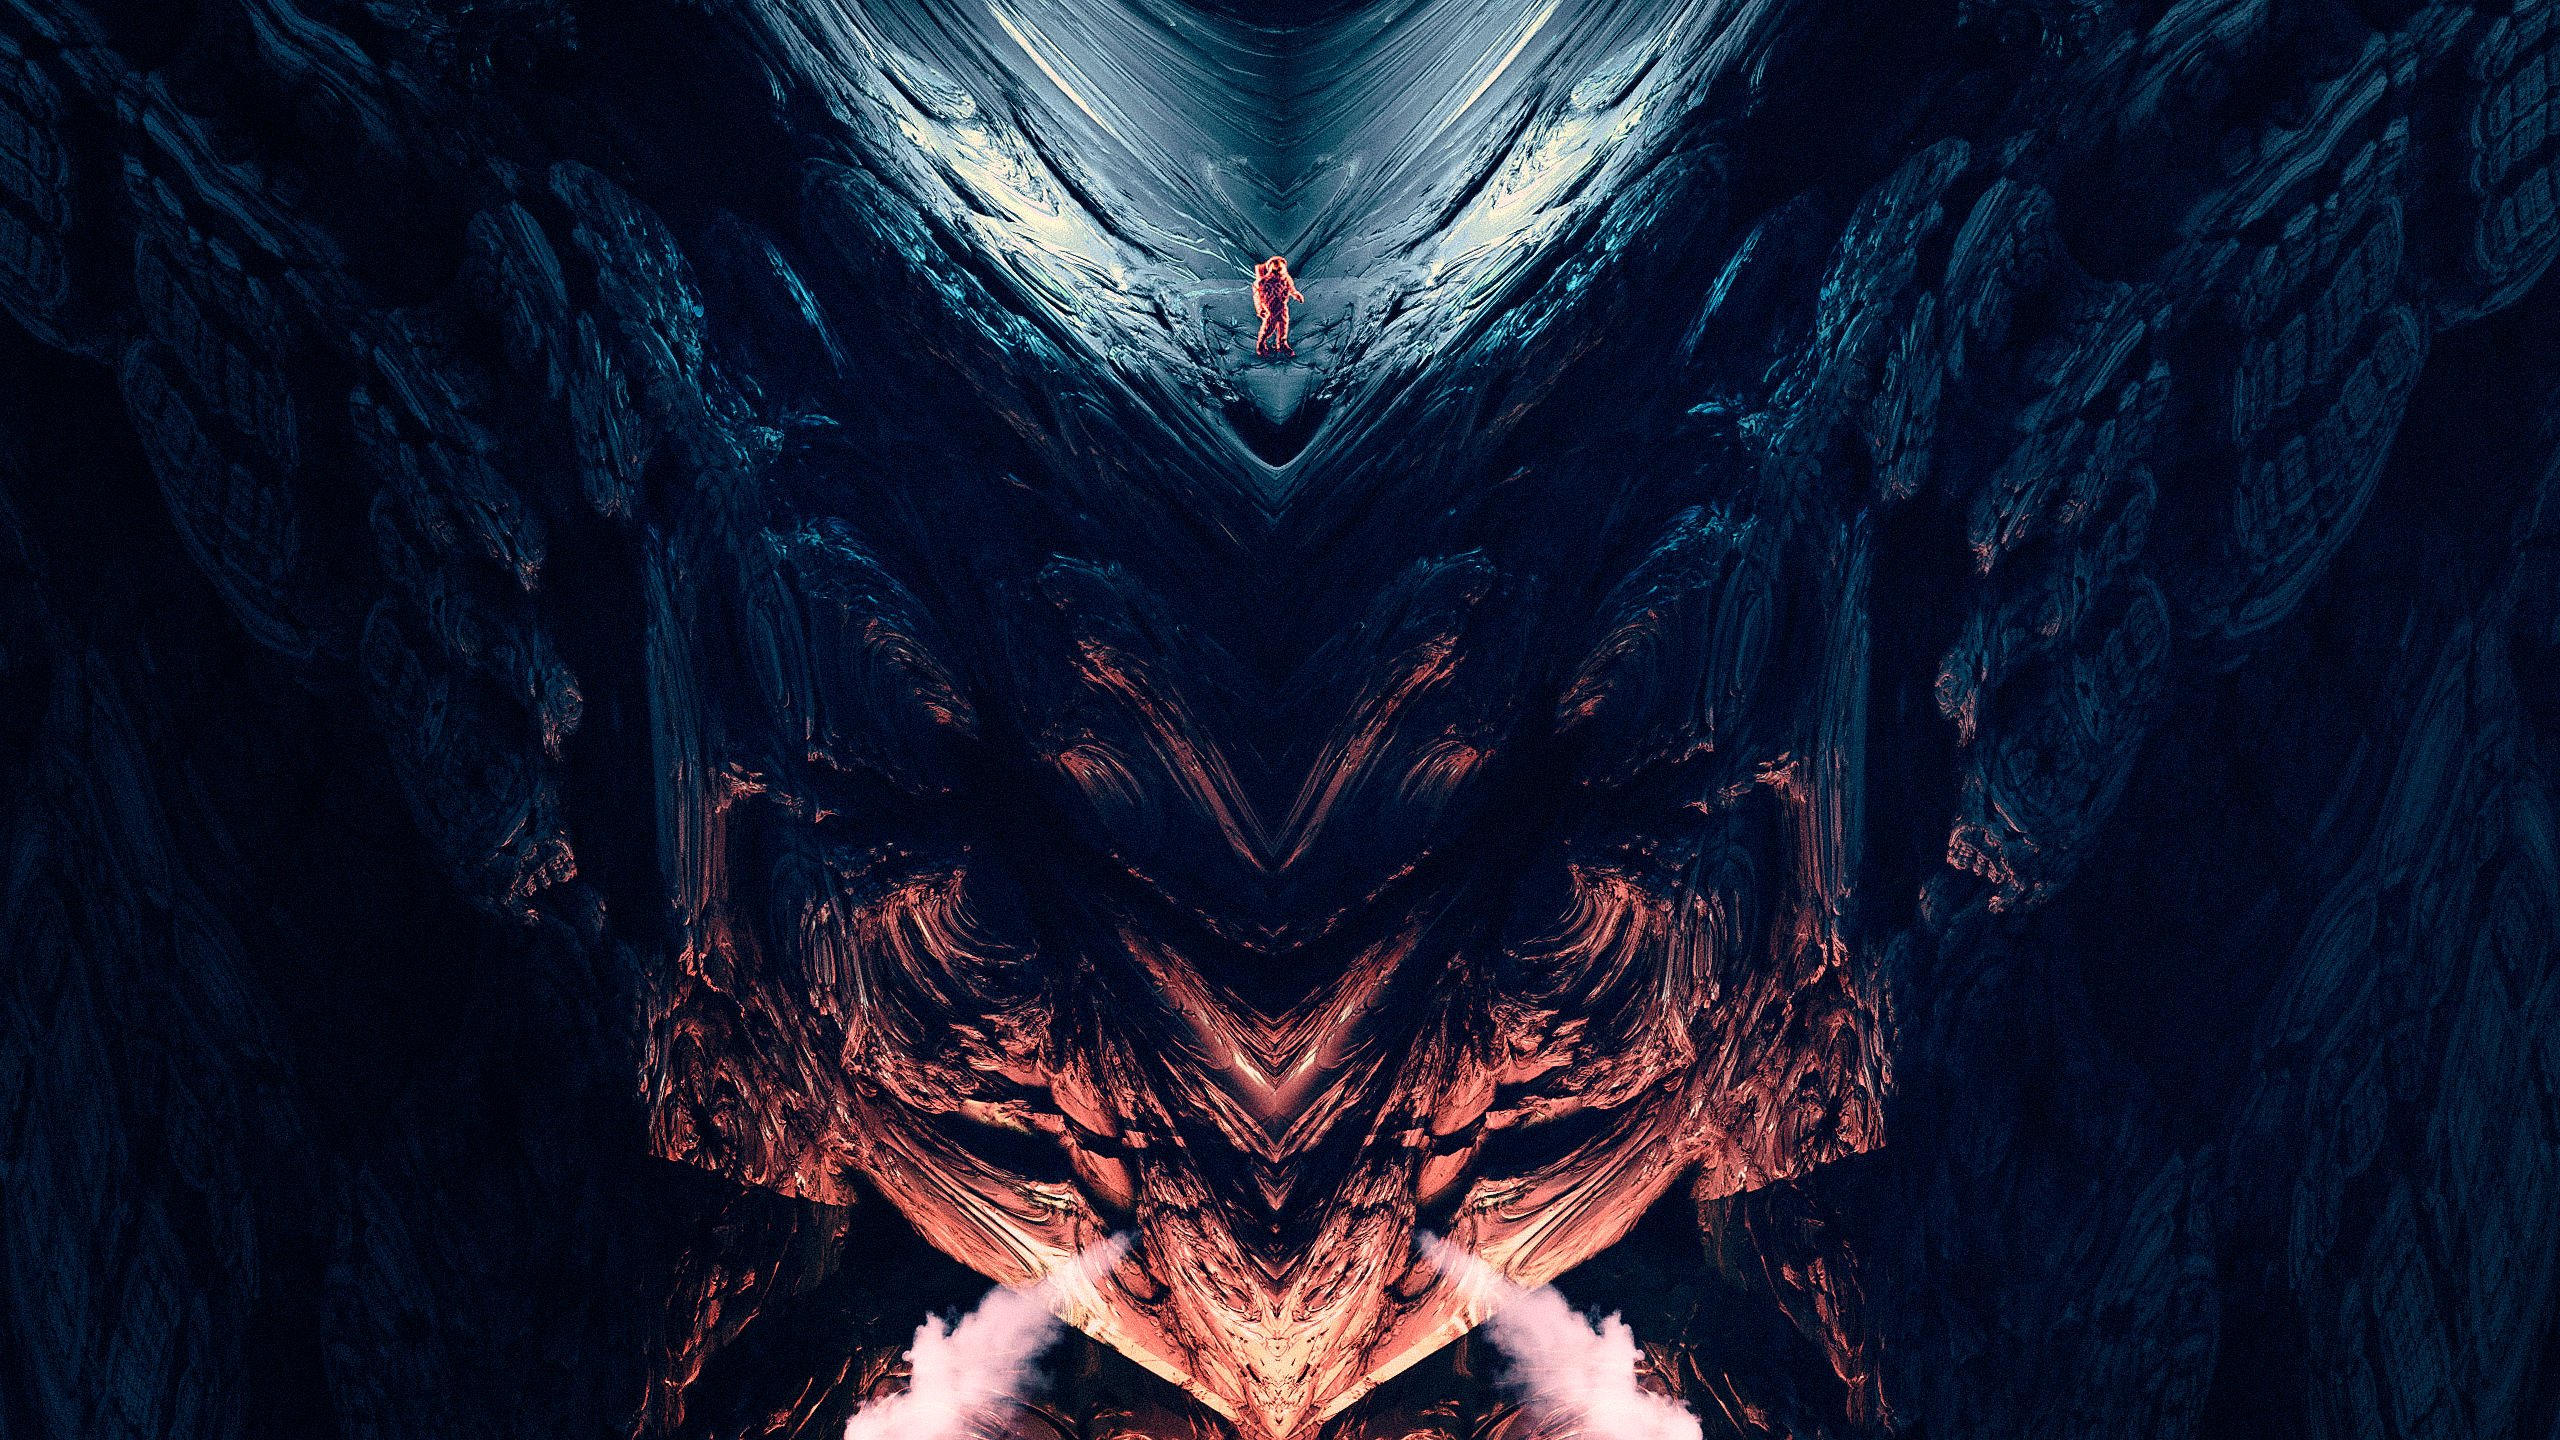 The Mandelbrot Loneliness Abstract Series by Nikita Kolbovskiy